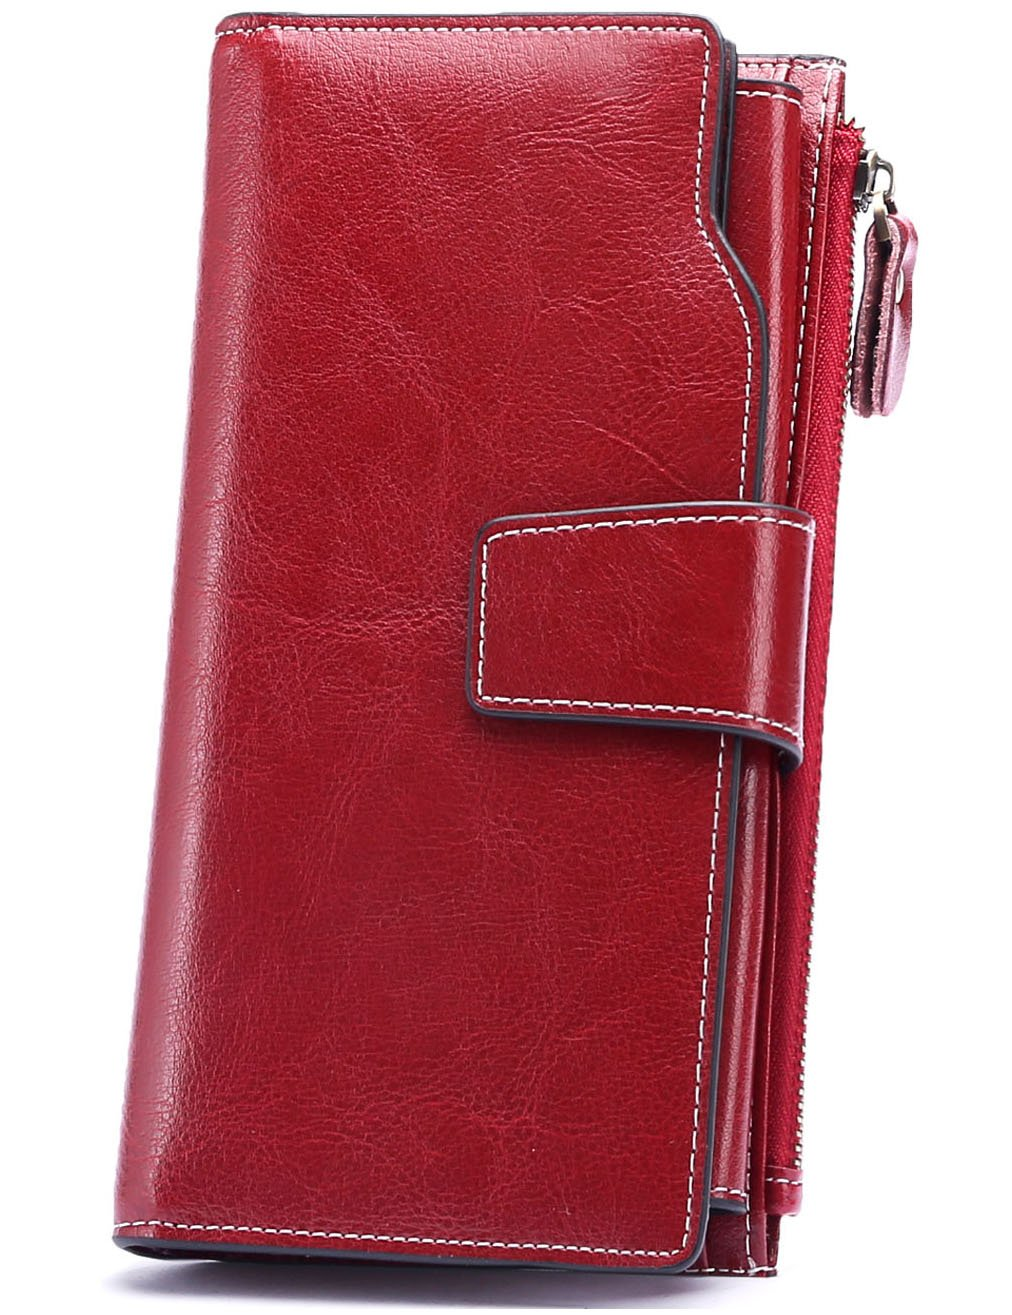 Womens Leather Wallet RFID Large Organizer Clutch Wallet Card Holder Lady Purse